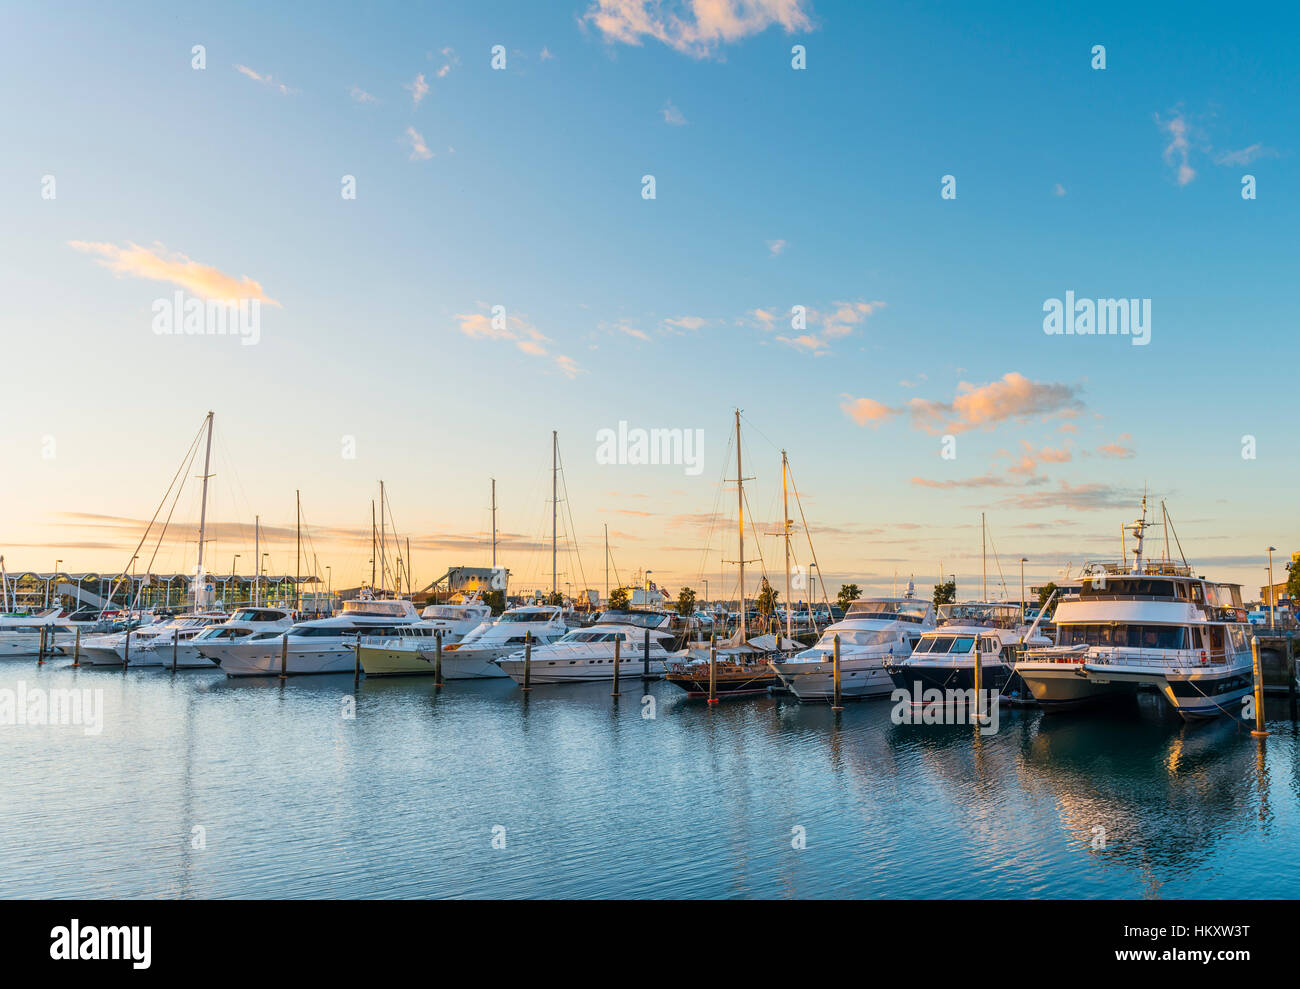 Sunset, sailboats and yachts, Waitemata Harbour, Auckland Region, North Island, New Zealand Stock Photo